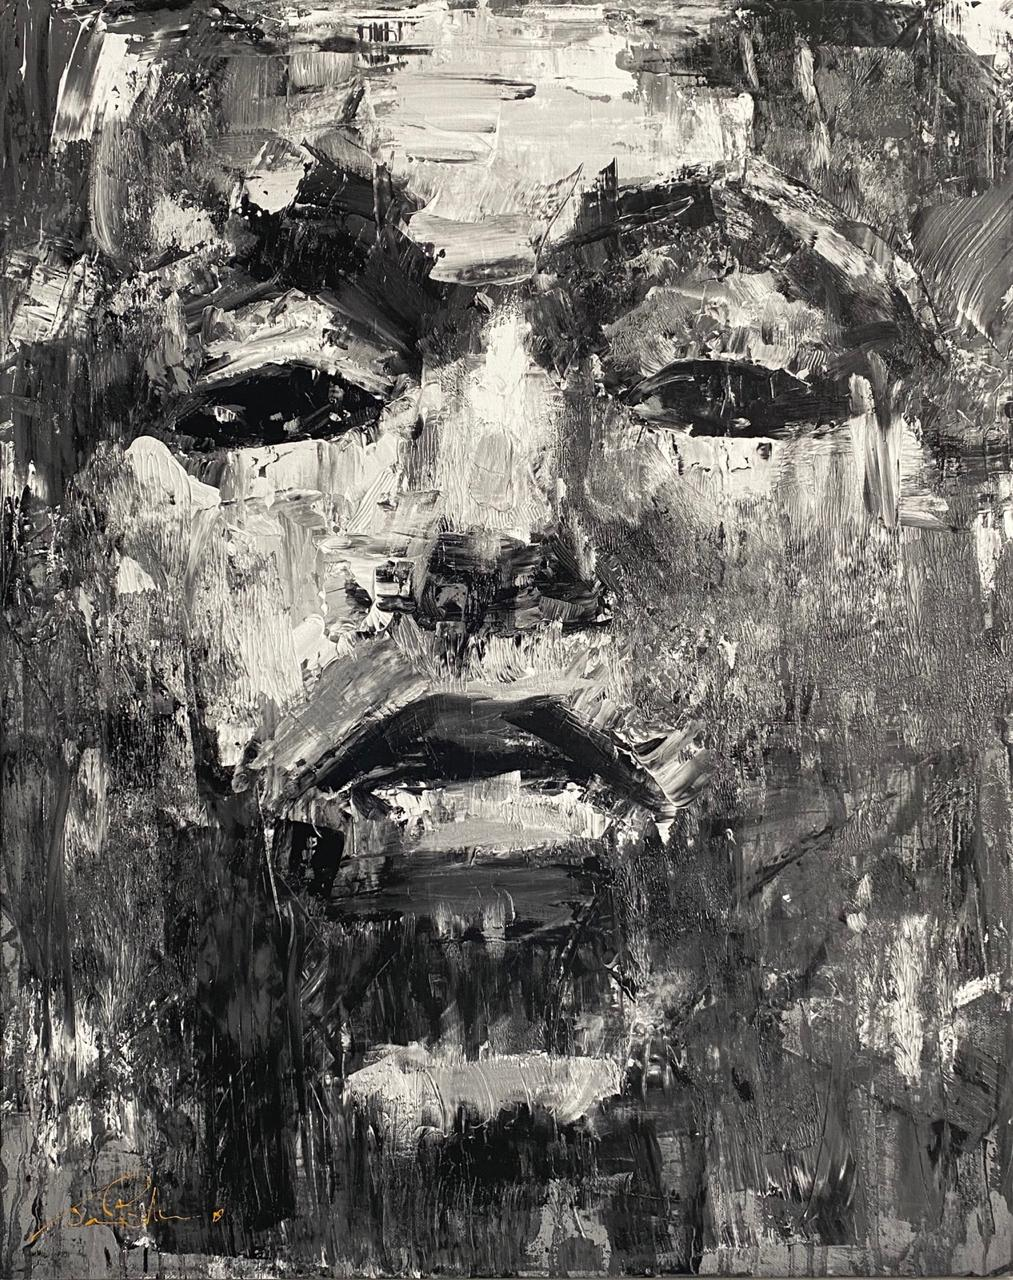 Ek sien (I see) - Black & White Medium: Oil on canvas 410x325 Canvas print R1700 410x325 Canvas print stretched R2200 700x550 Canvas print R2000 700x550 Canvas print stretched R2500